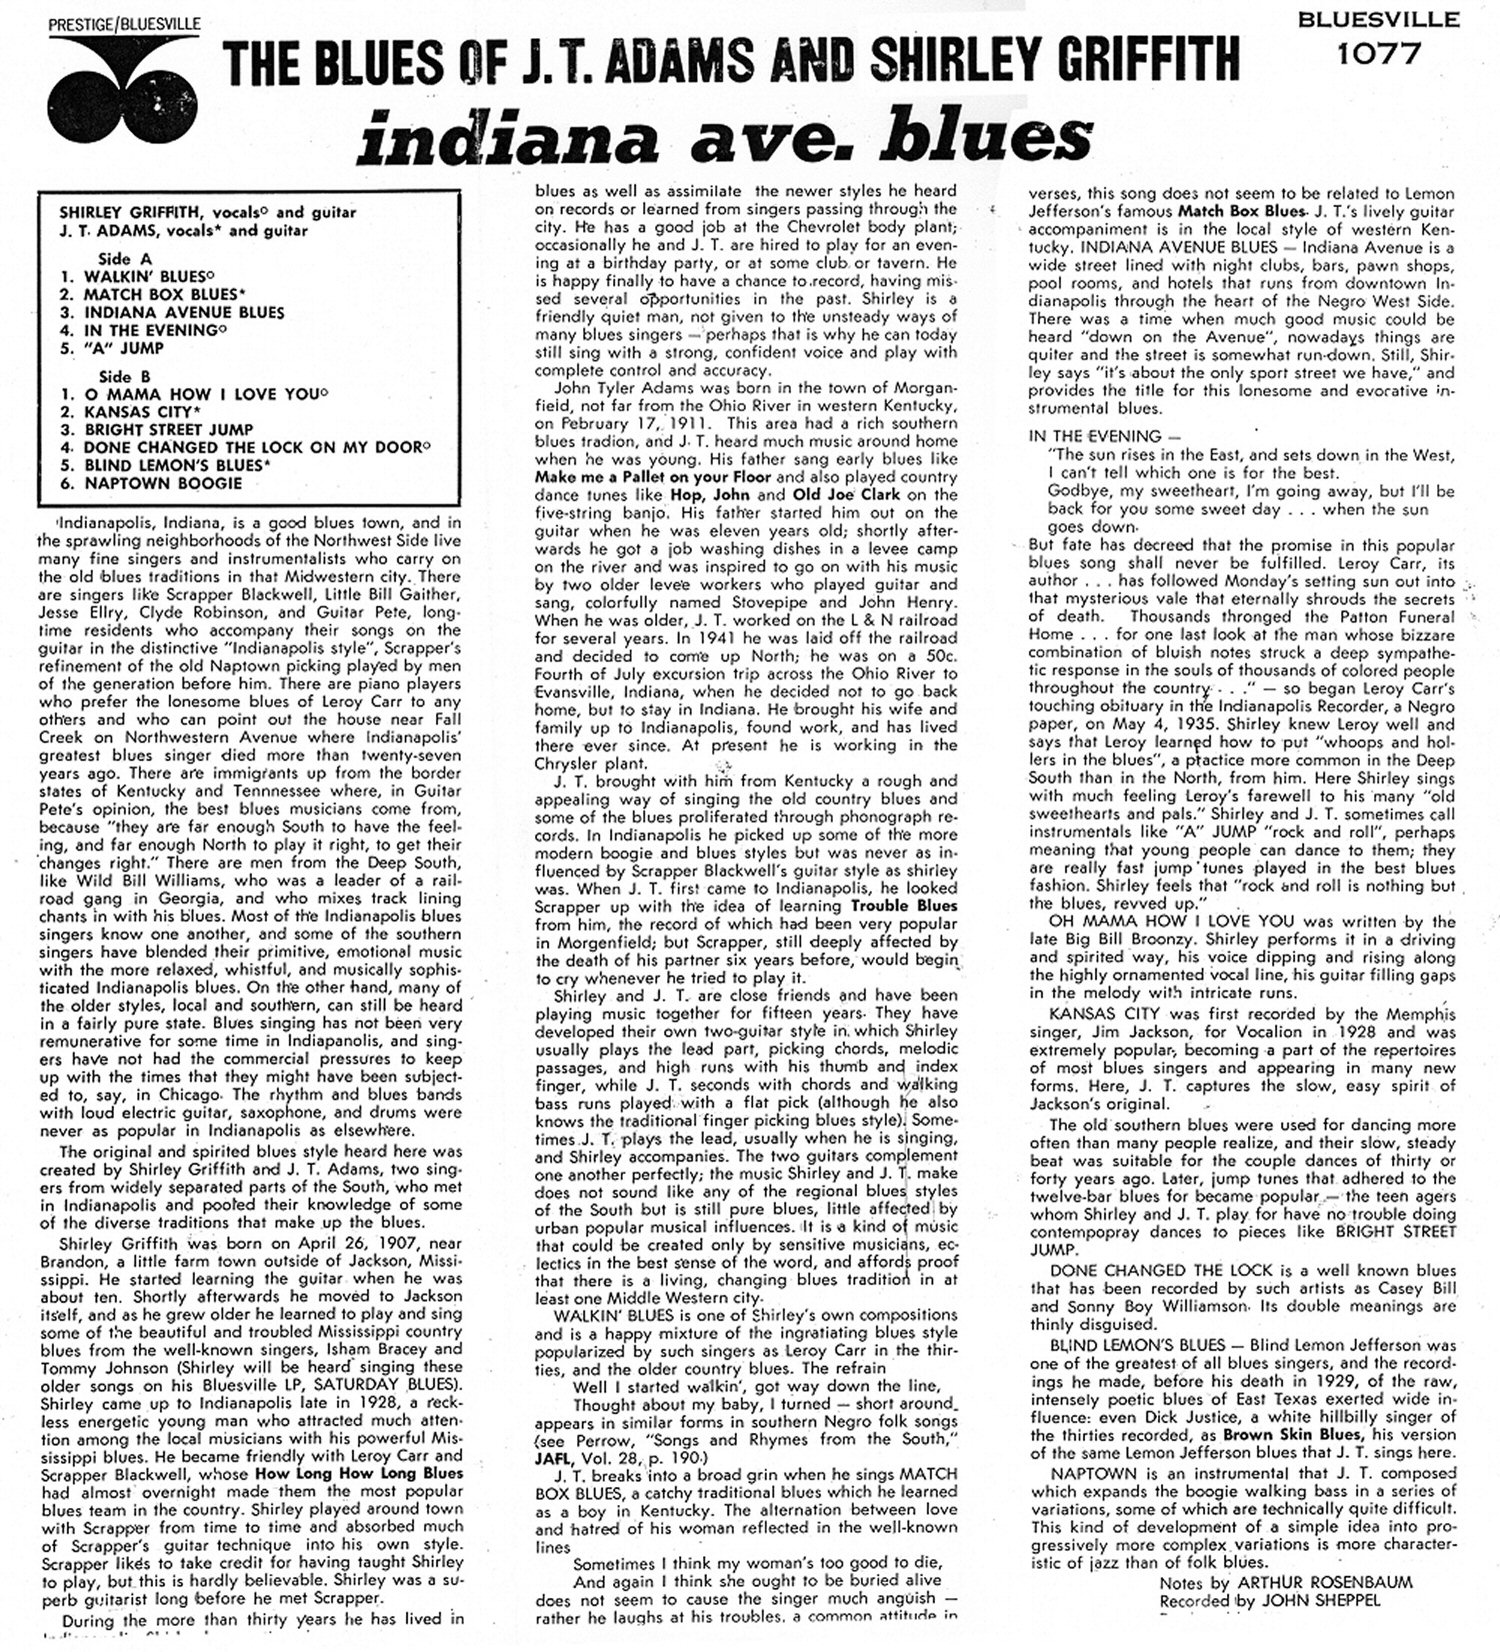 Indiana henry county shirley - Alec Seward Was Born In Charles City County Virginia And Relocated To New York In 1942 Where He Befriended Brownie Mcghee And Sonny Terry